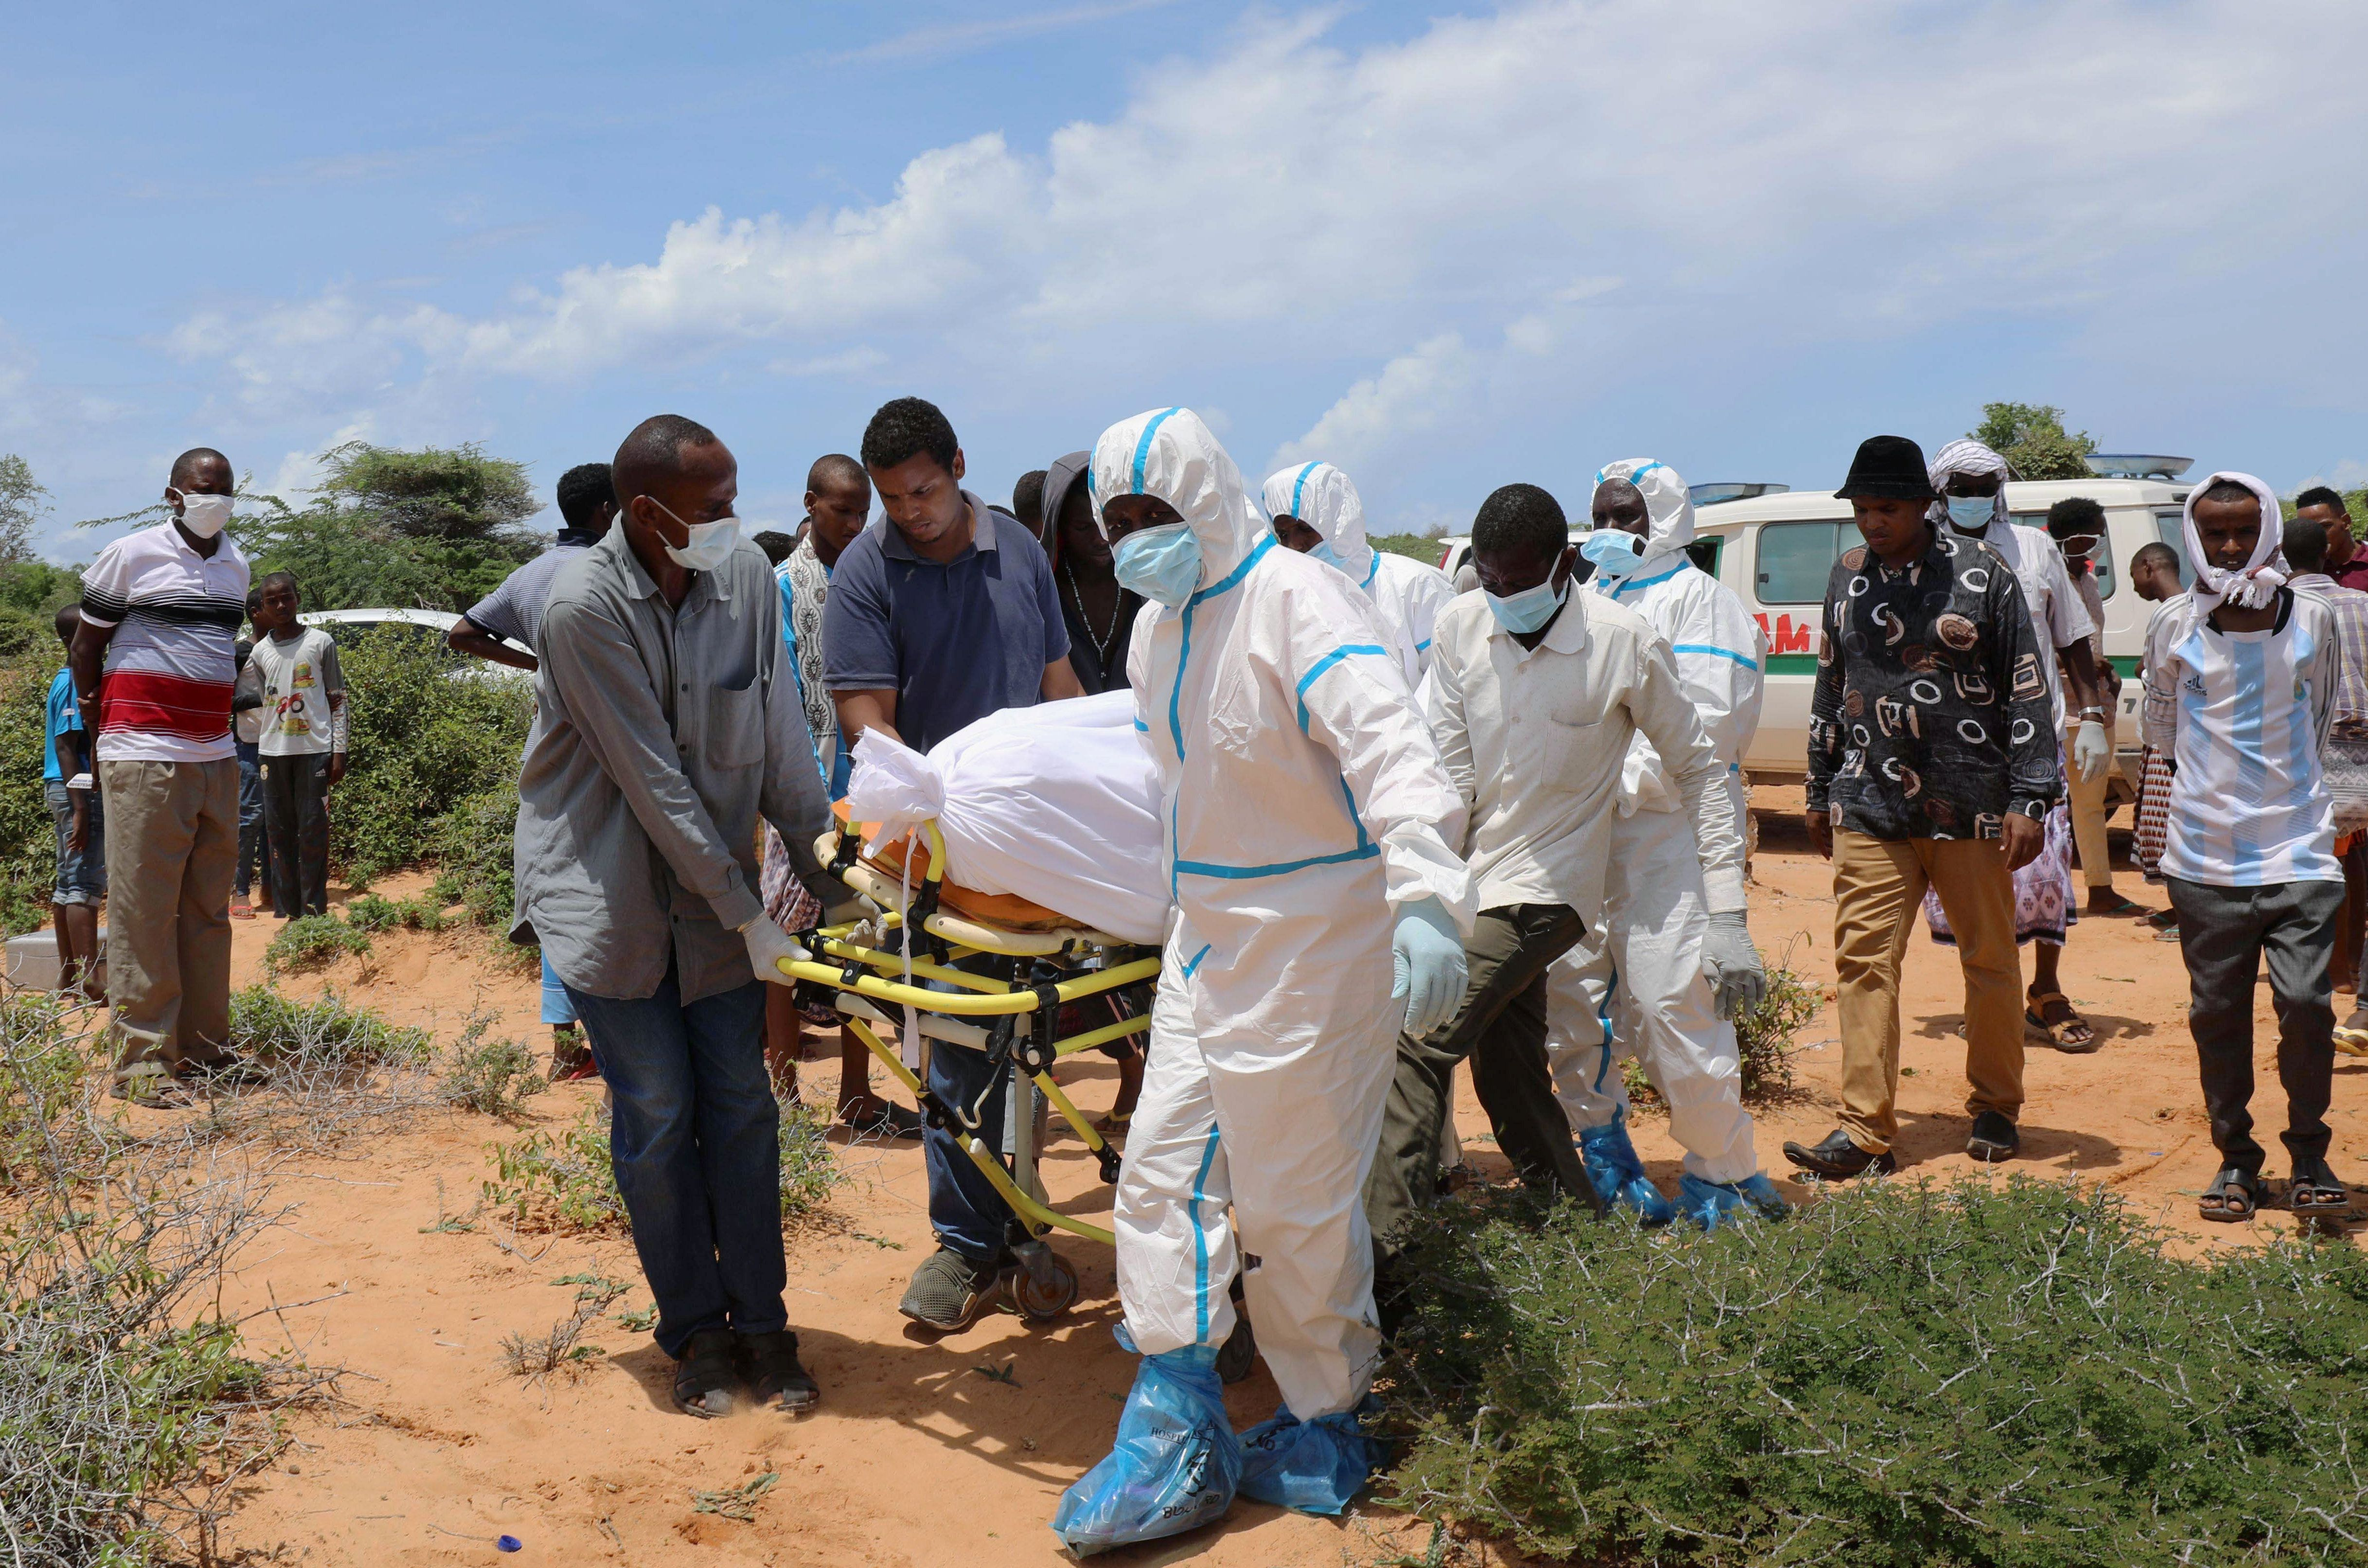 Hard Numbers: Somali healthcare crisis, UK COVID test failure, Colombian prison riot, views on women's rights